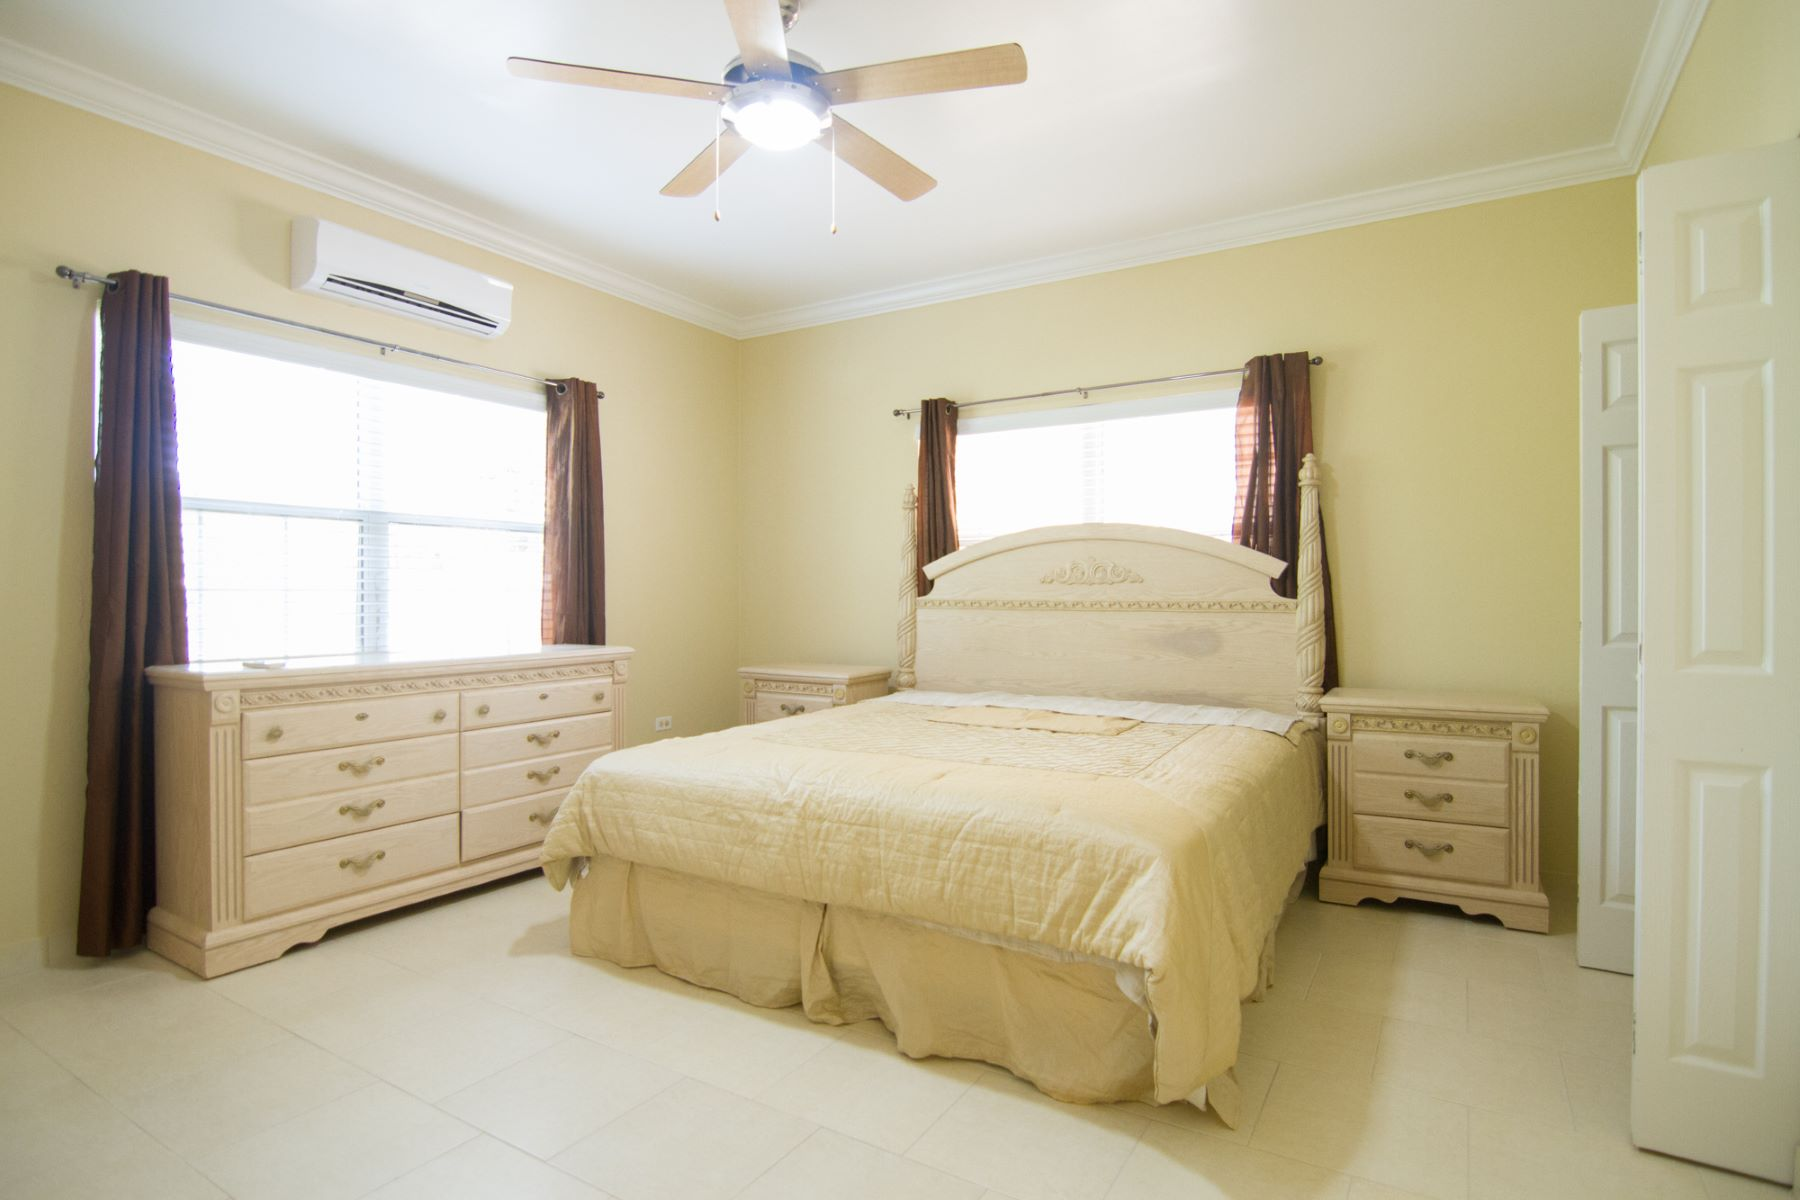 Additional photo for property listing at South Cayman Palms South Cayman Palms Terrysville Ln 低谷, 大开曼岛 KY1 开曼群岛